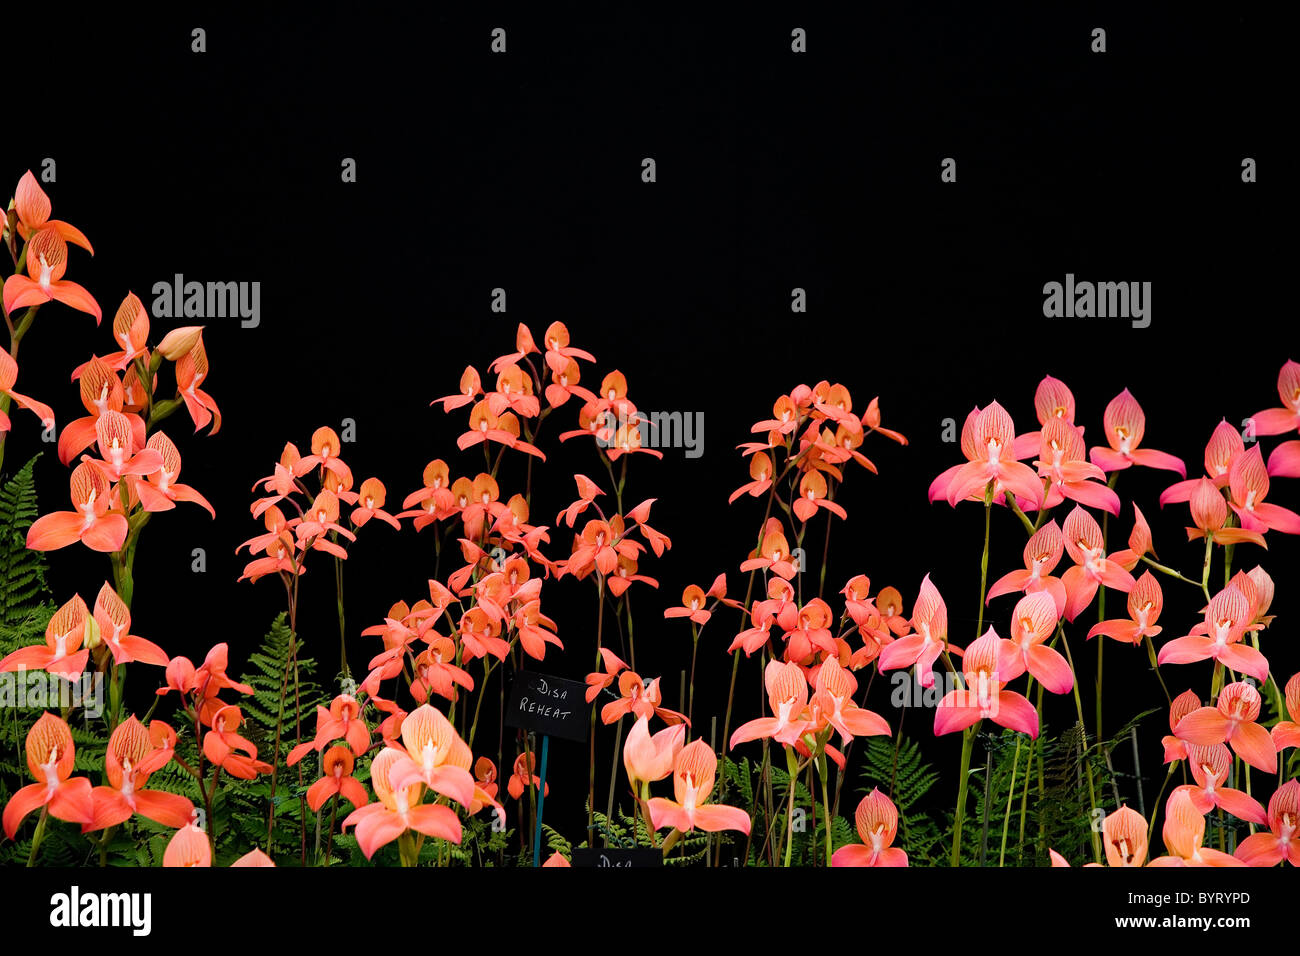 Disa flower display with bright orange and pink flowers against disa flower display with bright orange and pink flowers against black background wildlife still life image studio mightylinksfo